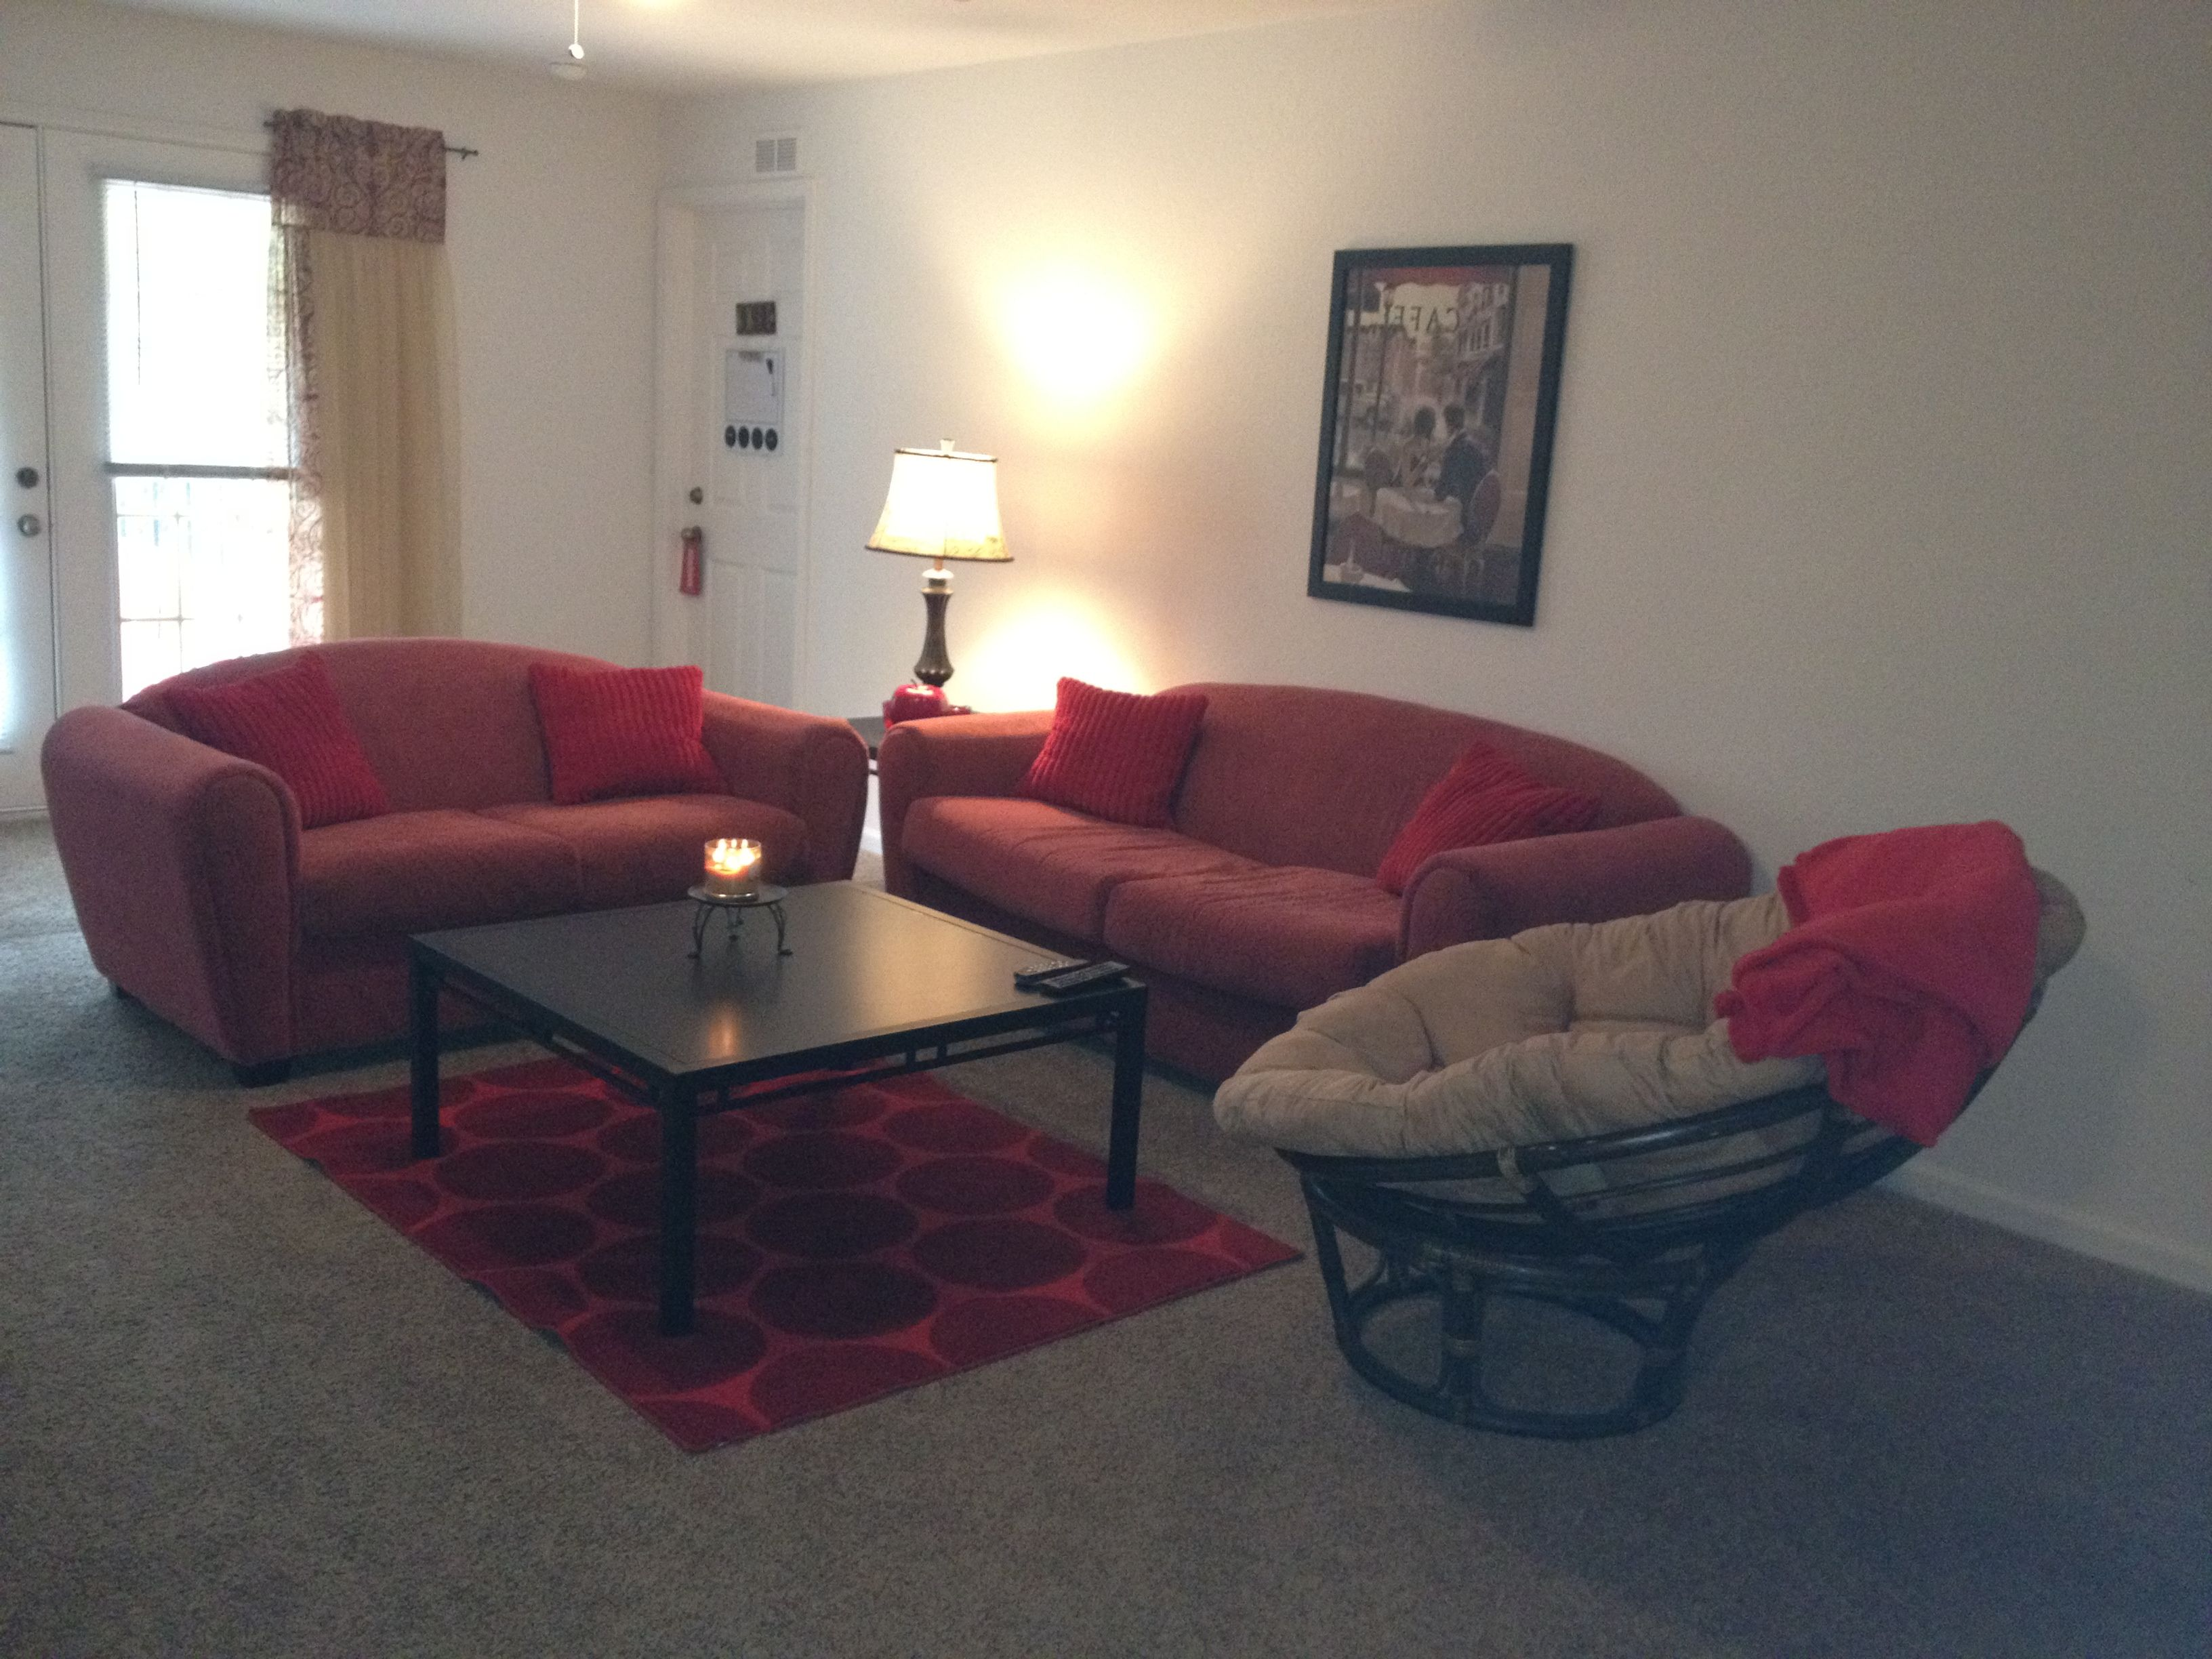 Muebles Aguirre Daimiel My College Apartment Living Room Pops Of Red Or Turqoise